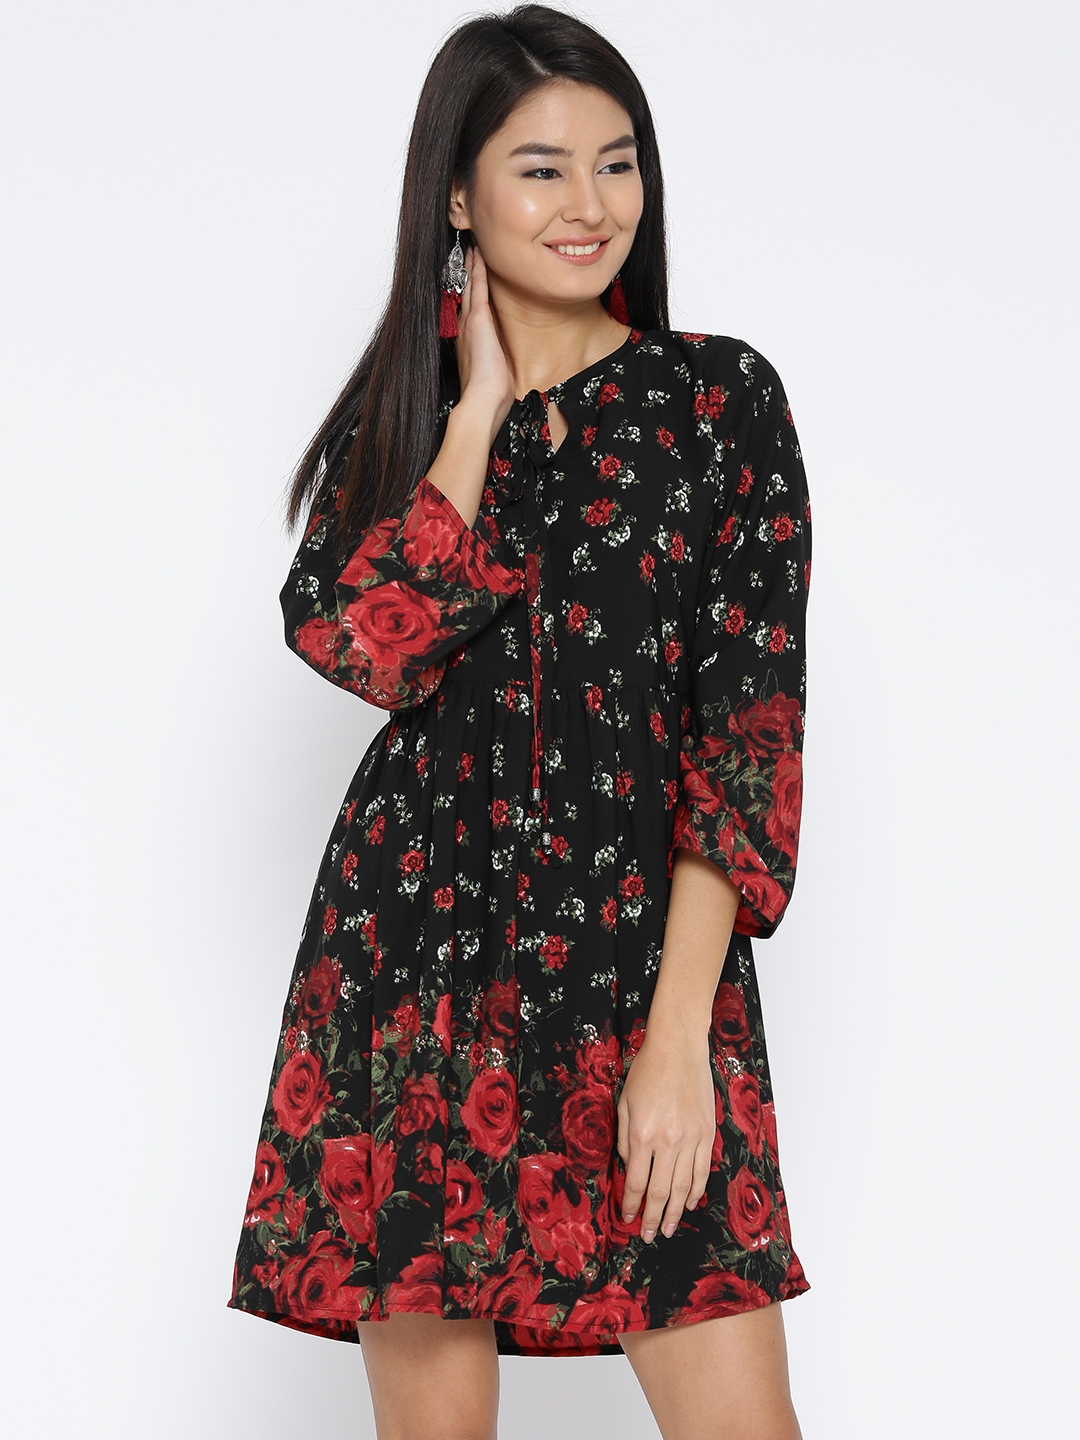 a74f8d4a037 Buy Sera Women Black   Red Floral Print Fit And Flare Dress ...